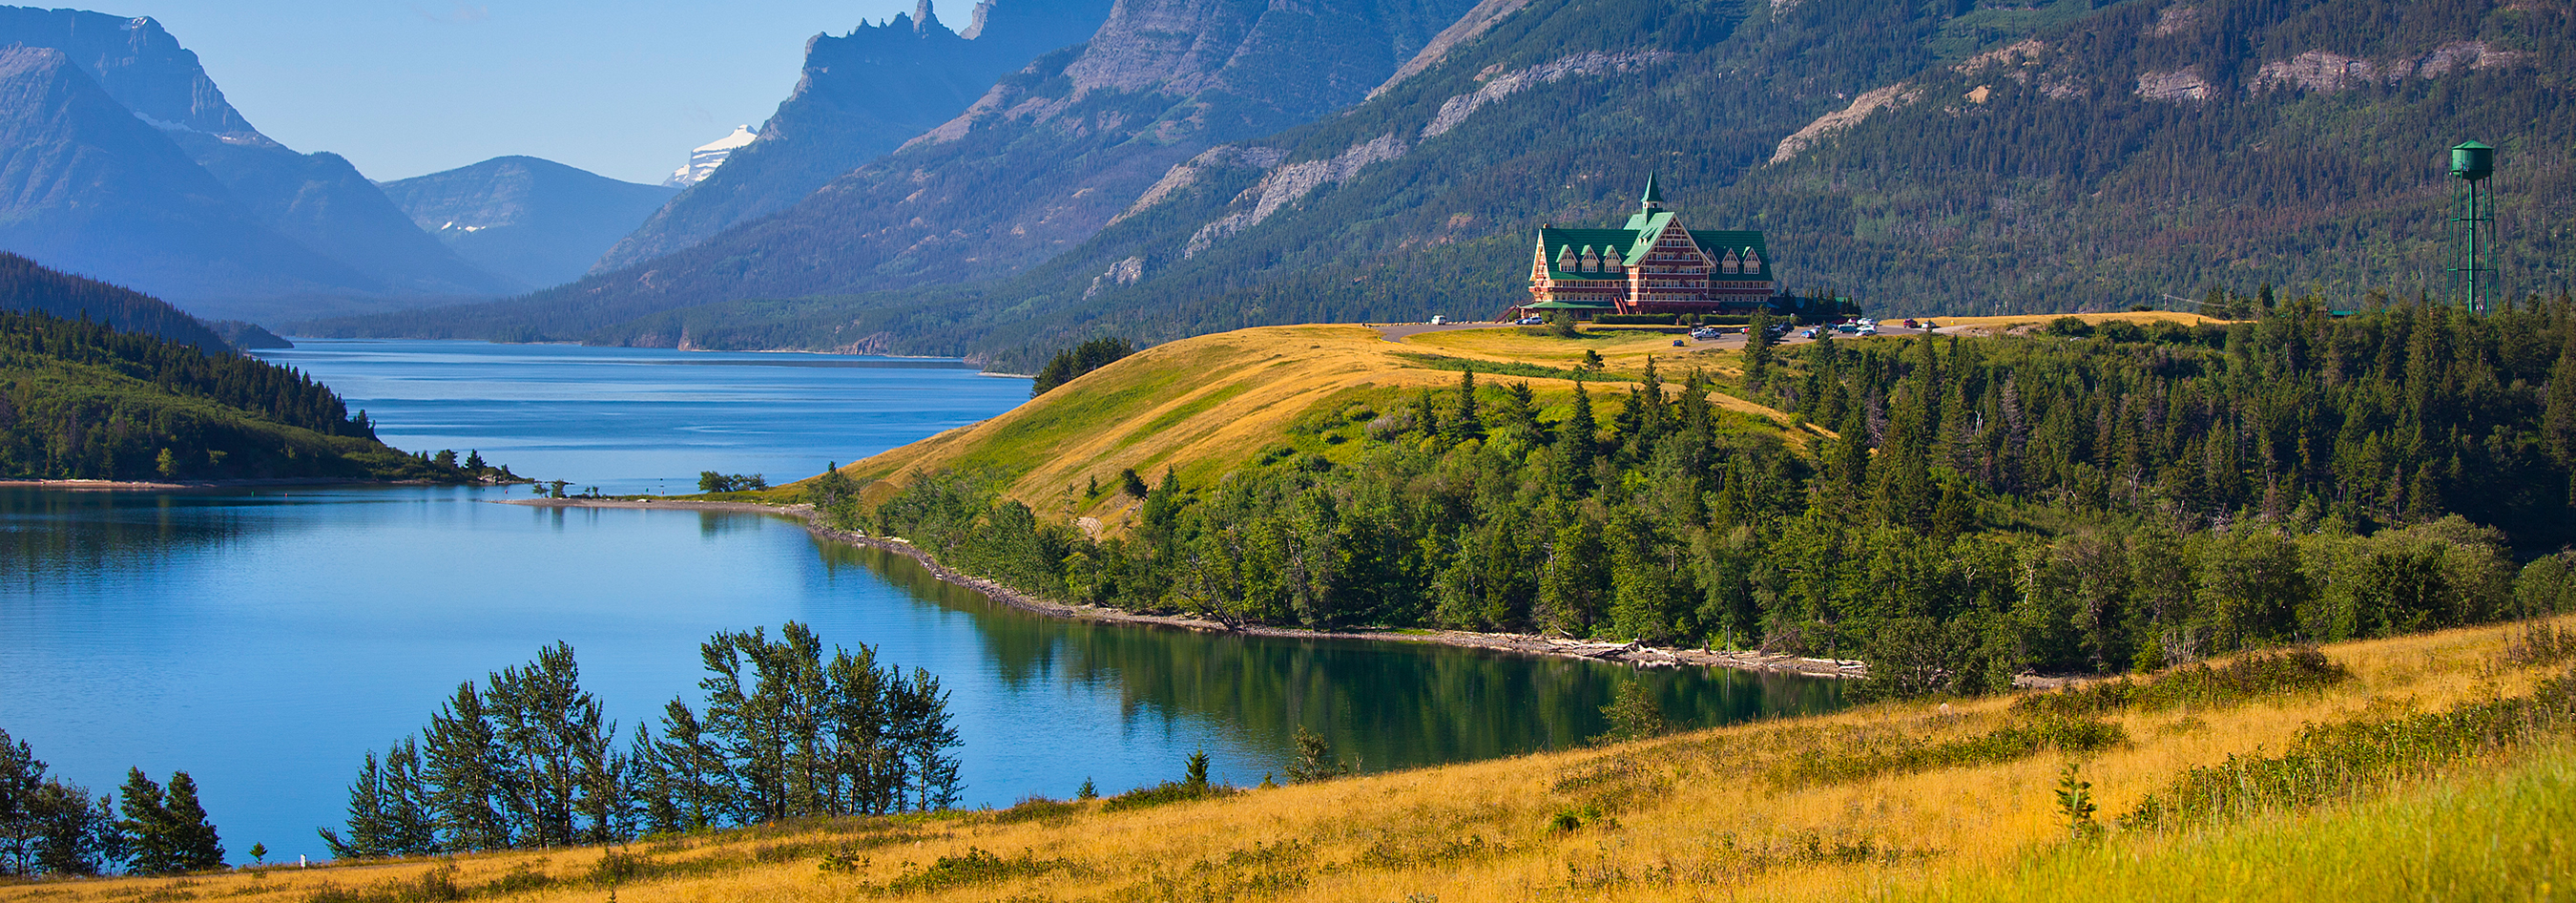 Watch How to Enjoy Glacier National Park video